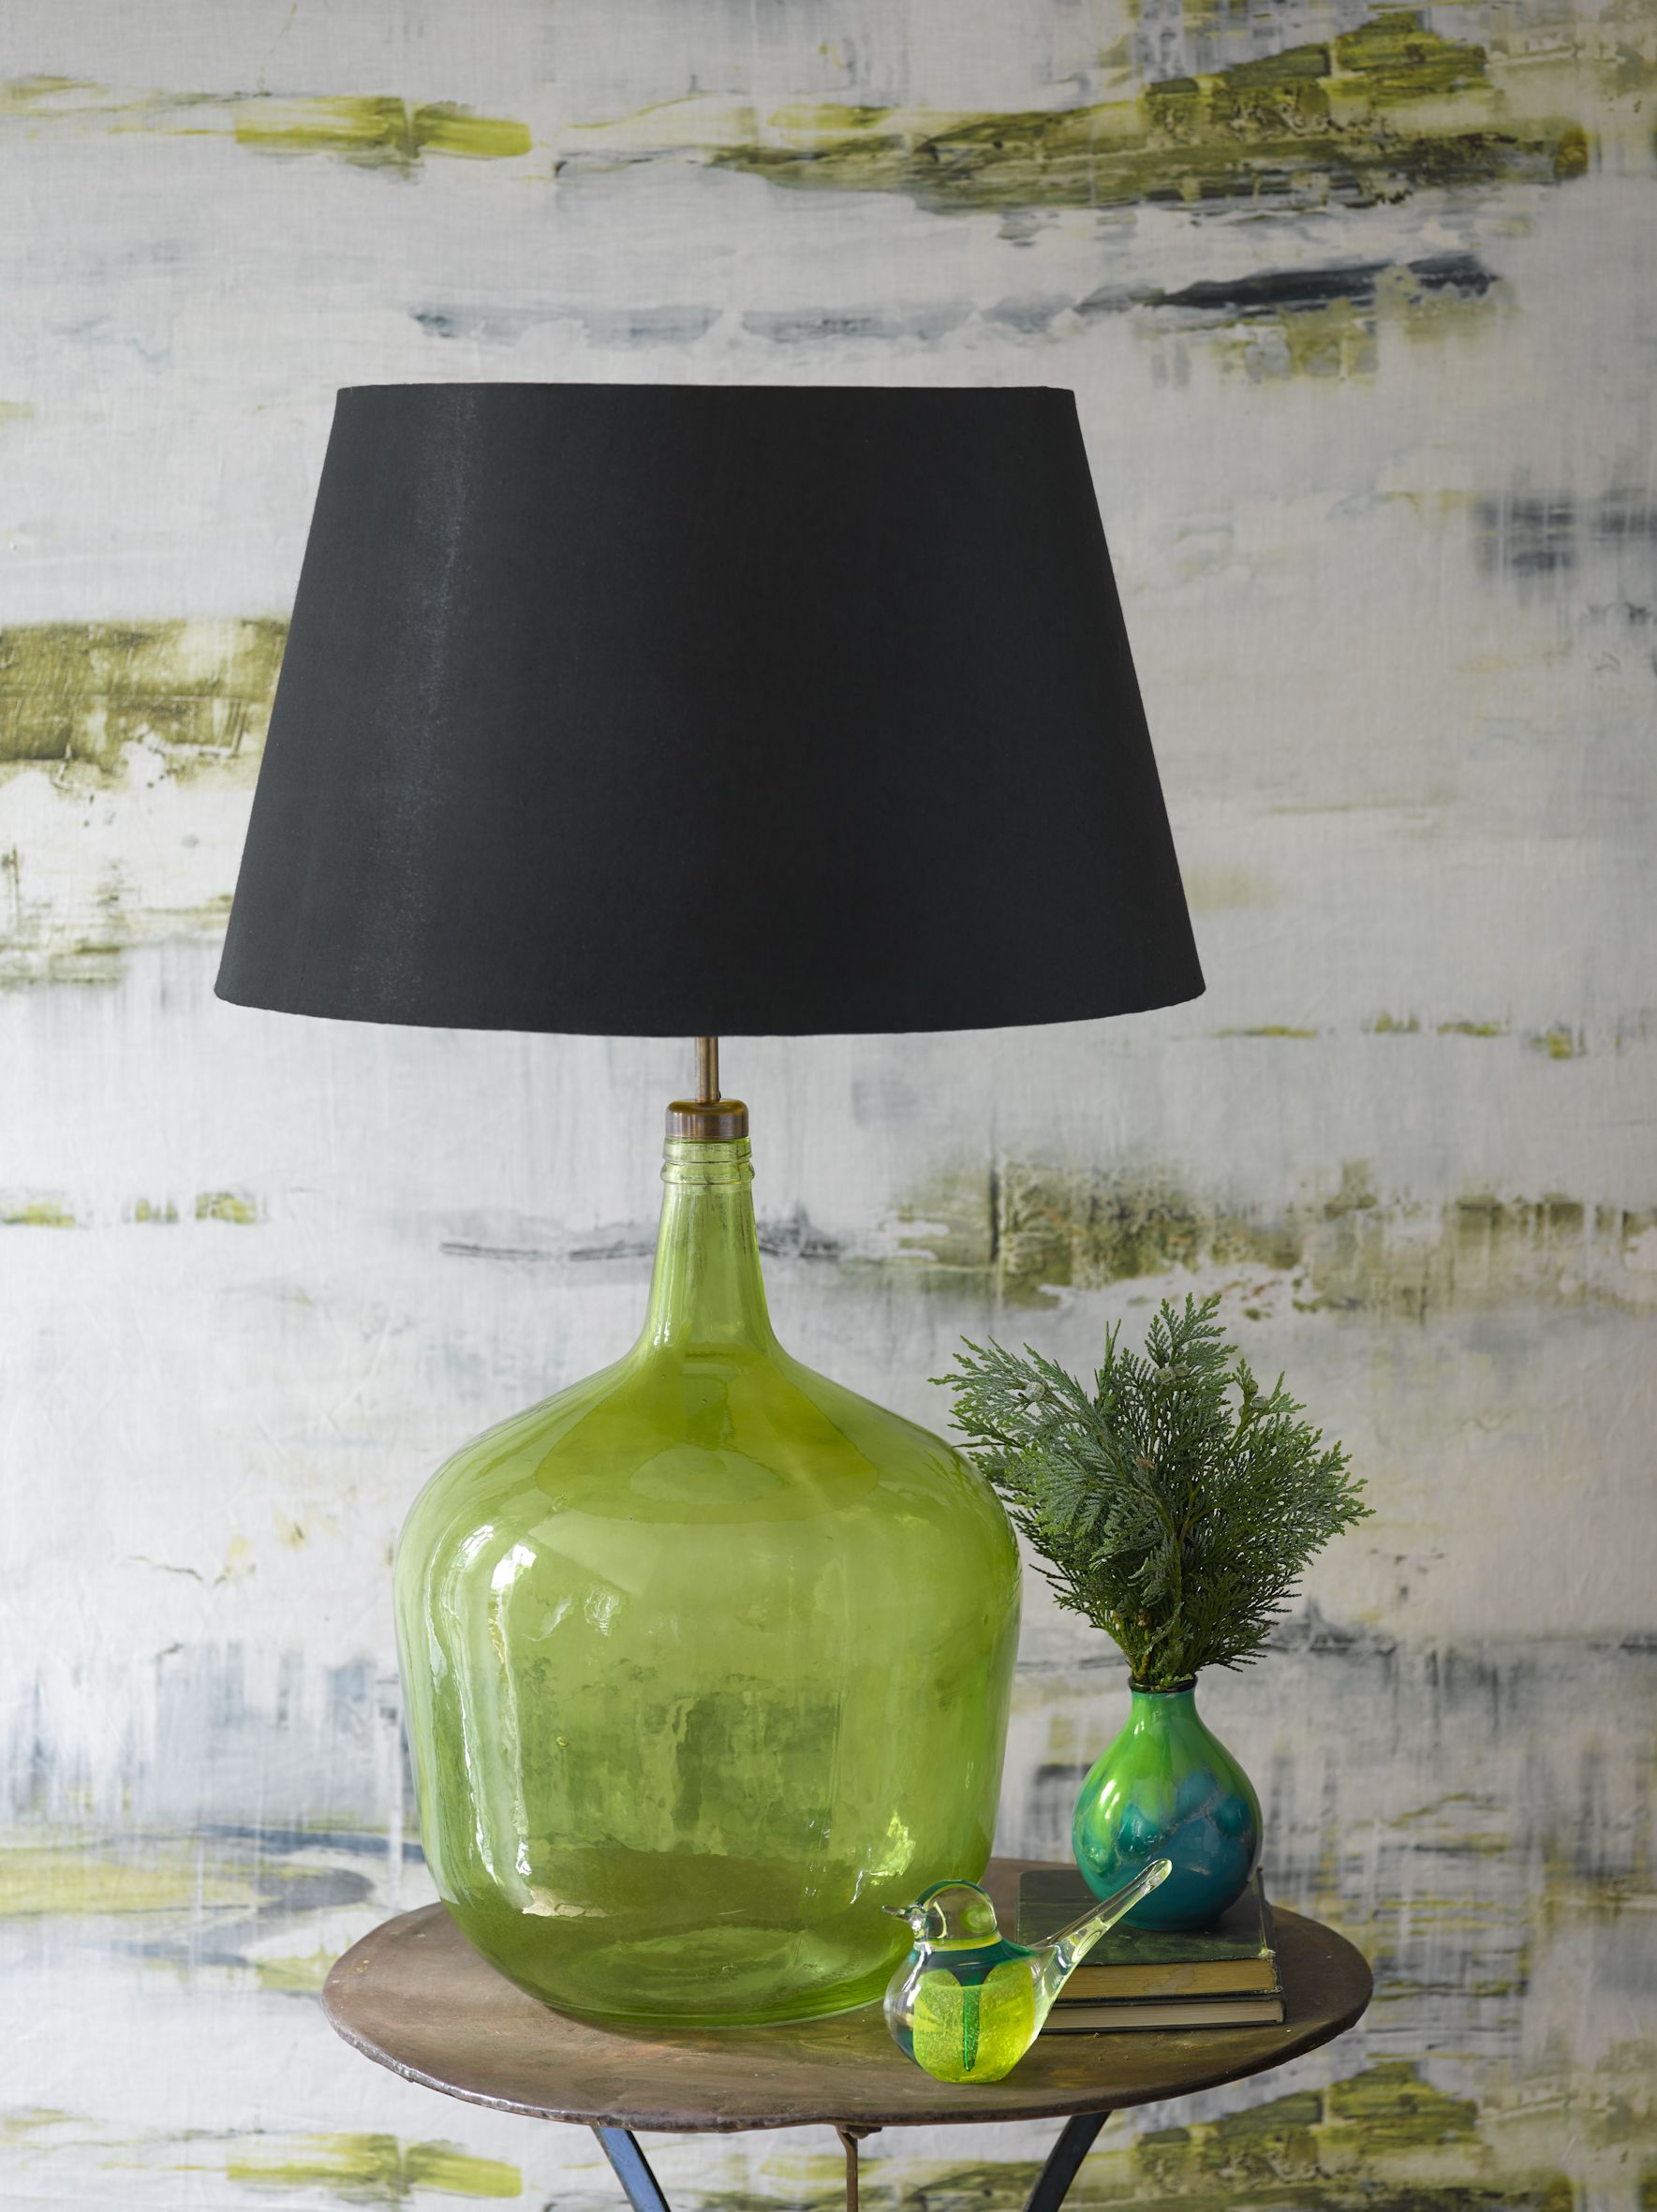 ceramic h with living astounding salegreen lamp mini room for inspirational lamps shade chaingreen courtney hunter photo shadegreen pull modern lampsgreen empire table blue shades green contemporary design